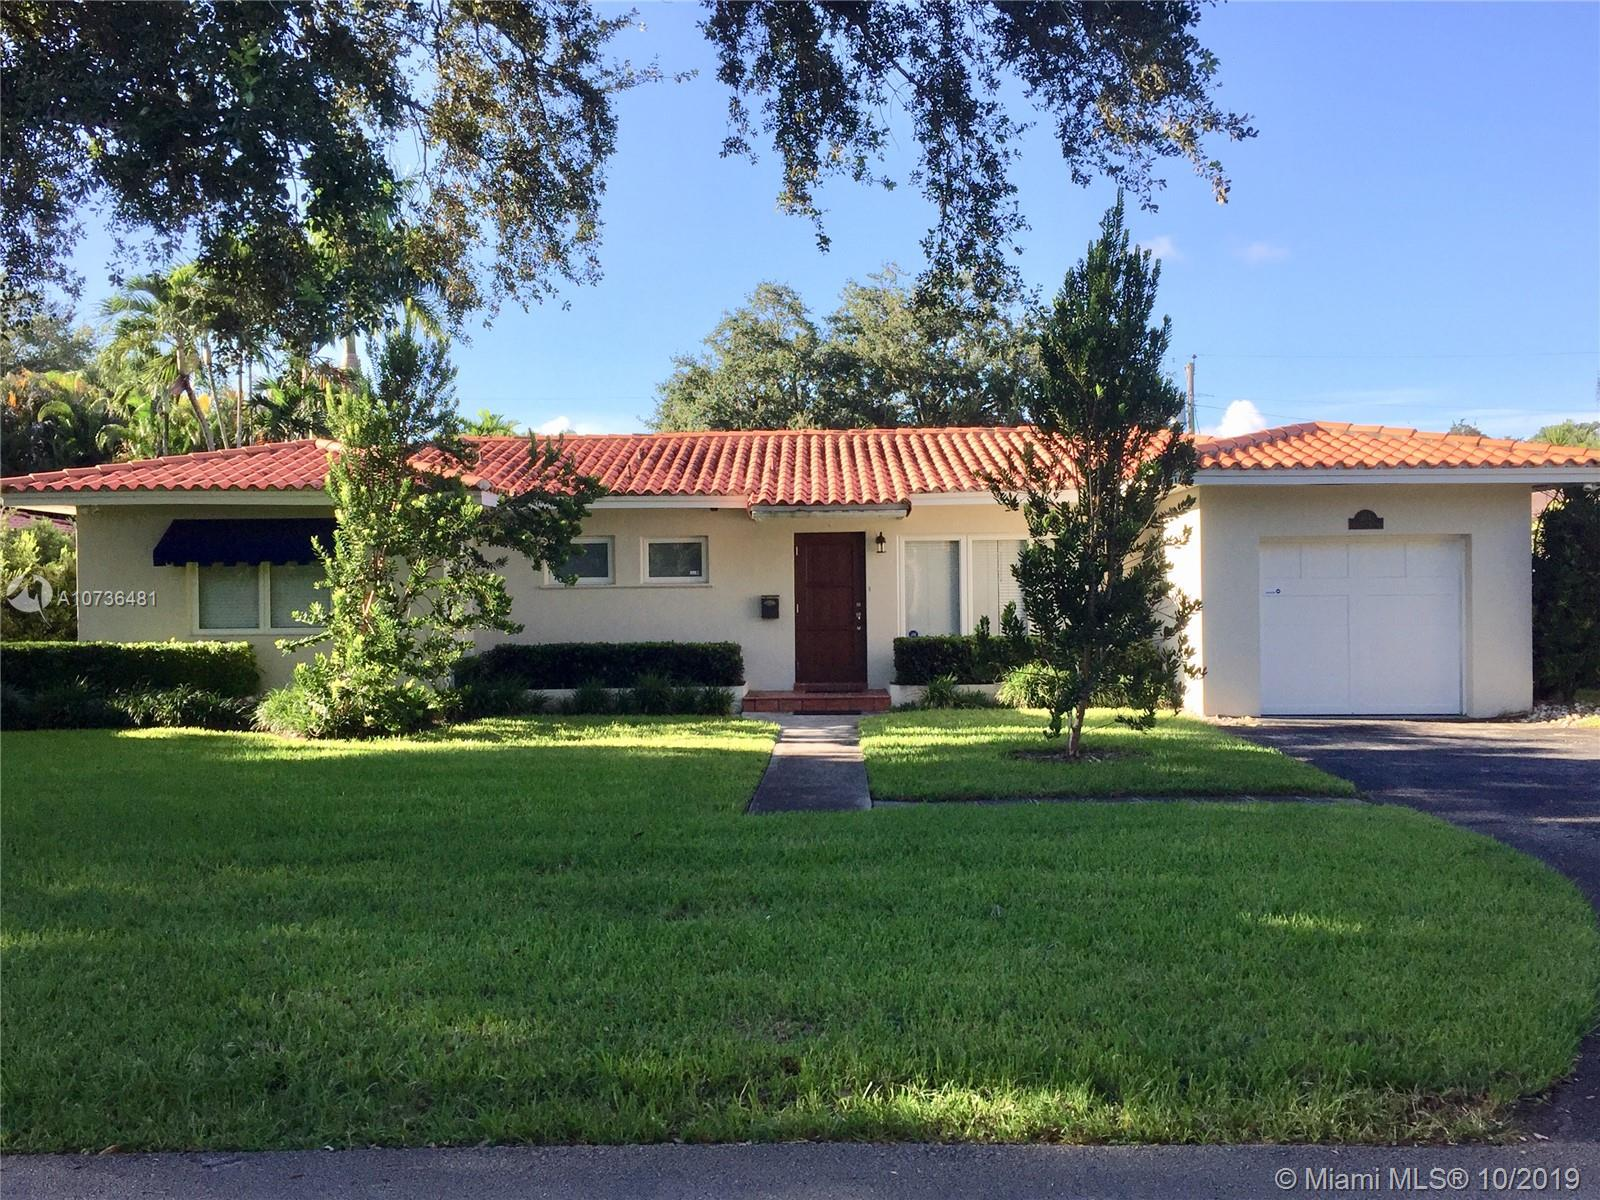 1114  Placetas Ave  For Sale A10736481, FL